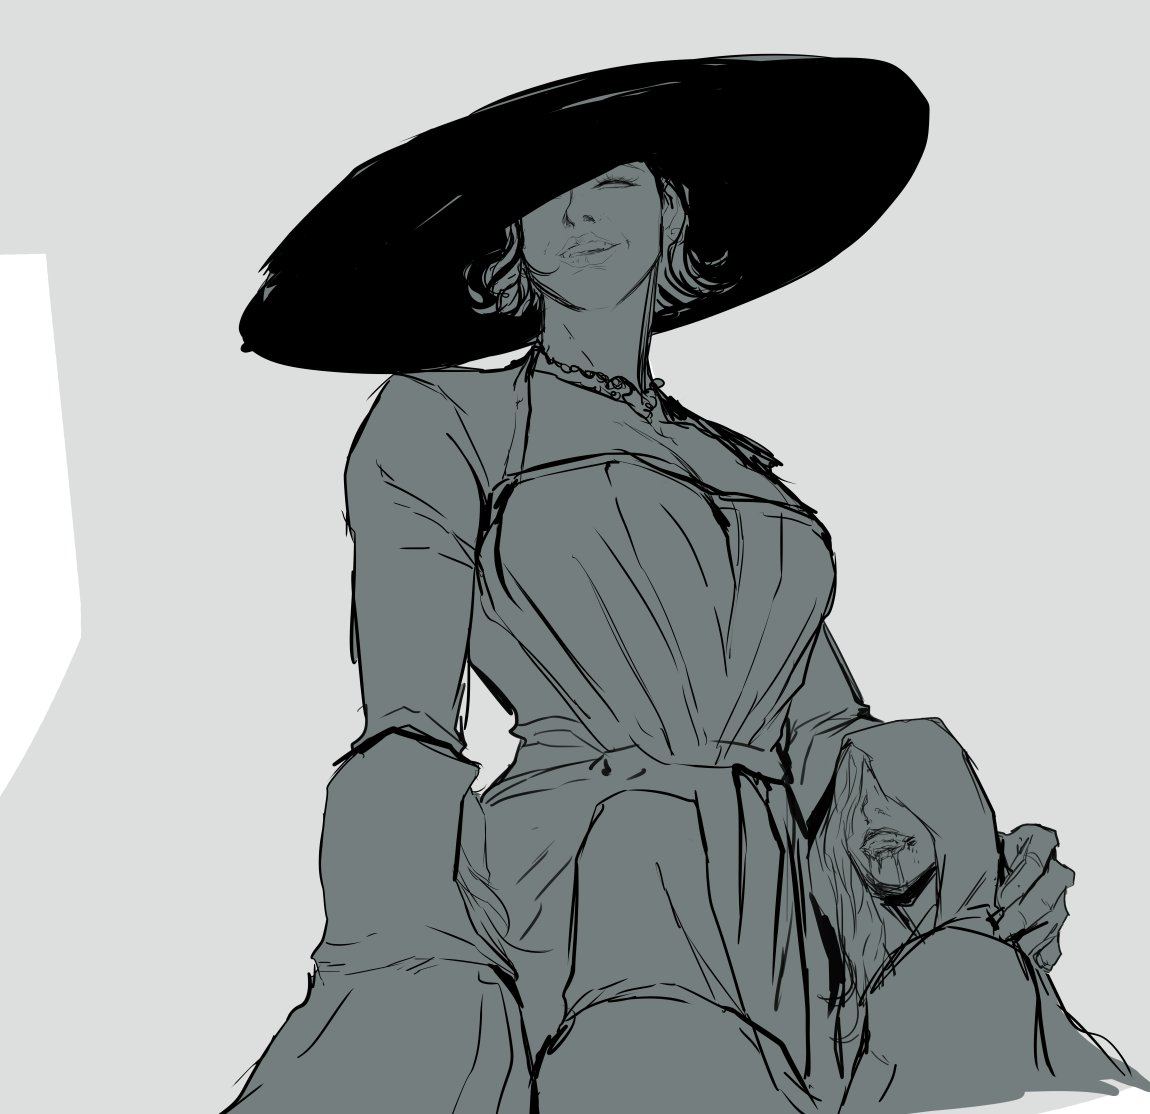 RT @BS_artsss: Of course im gonna draw more Lady Dimitrescu/Daughters/Maiden stuff. https://t.co/U0EE8MIq3M